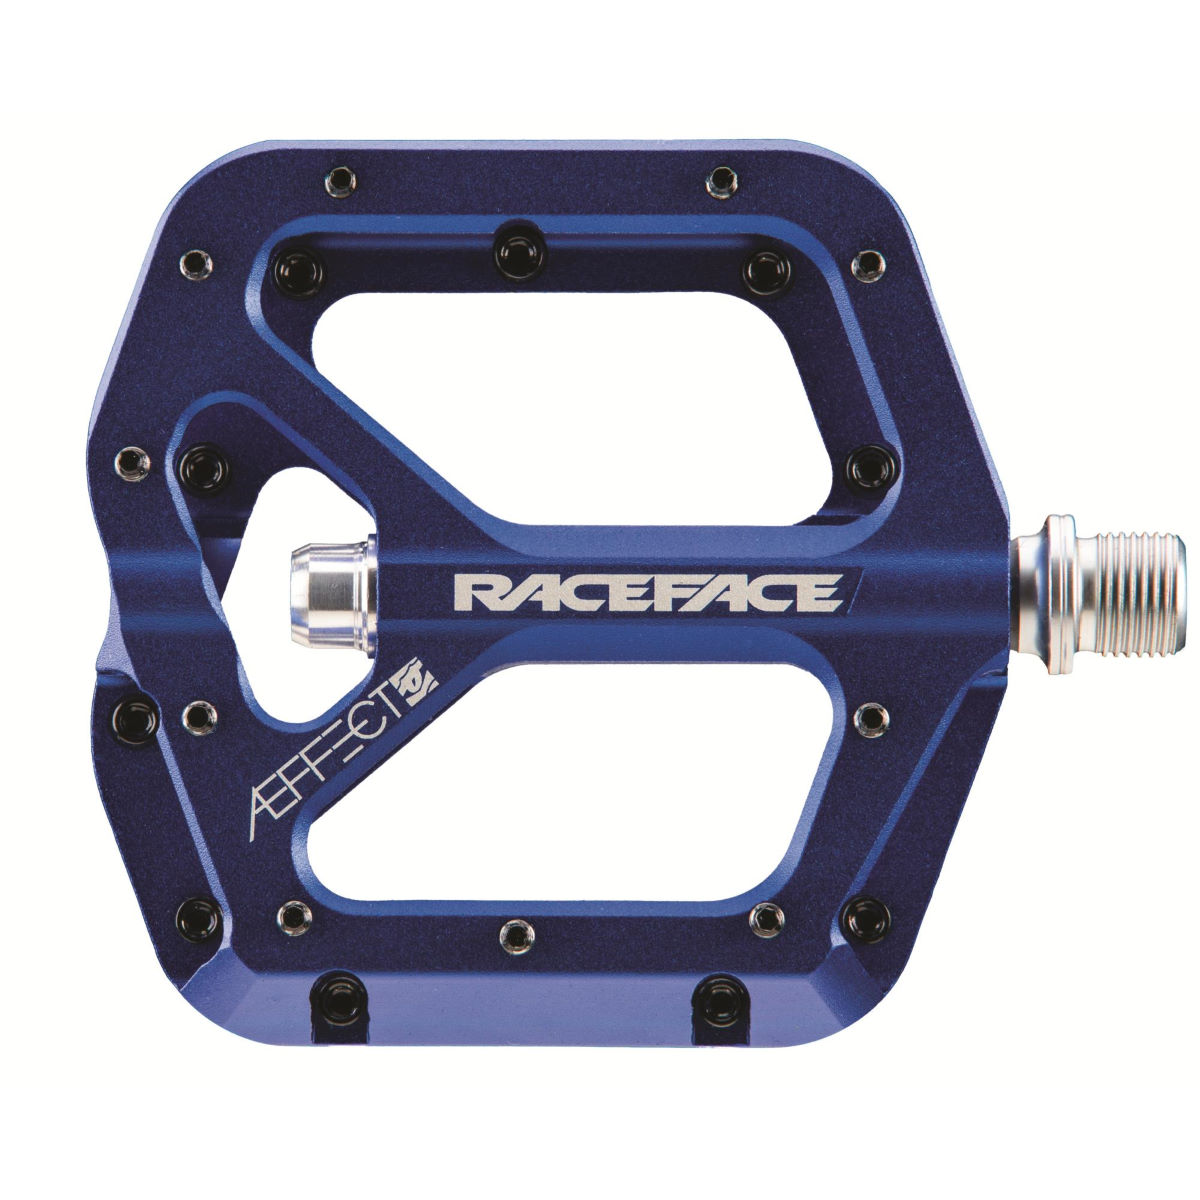 Race Face Aeffect Pedals - One Size Blue  Flat Pedals